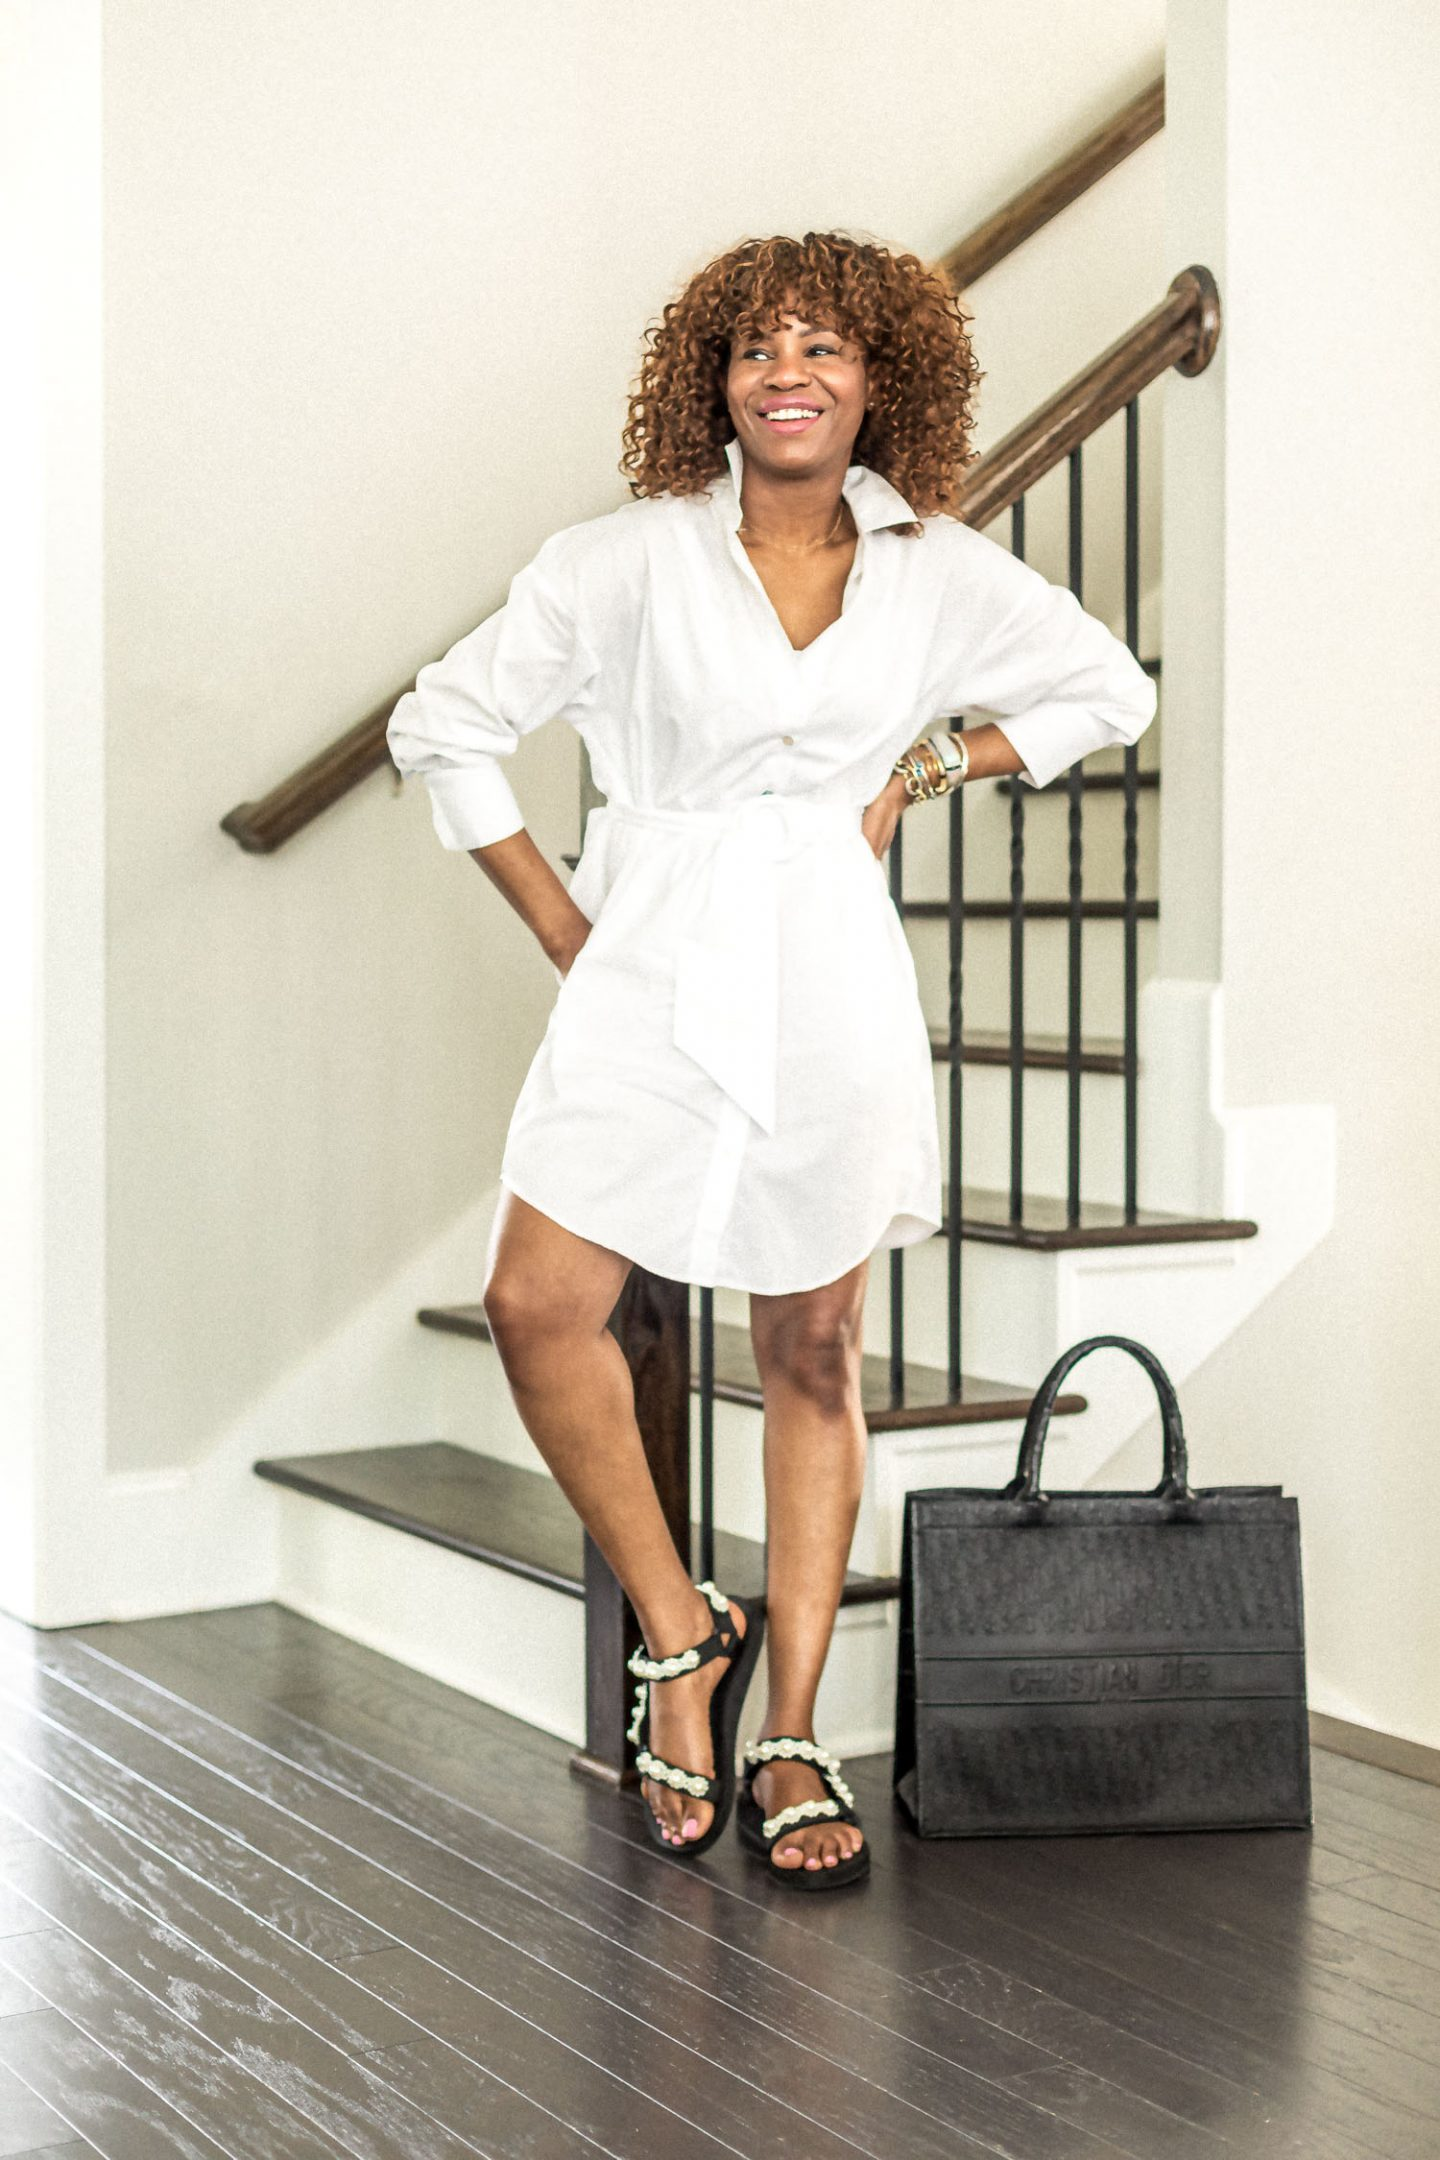 shirt dress, white pants, how to style white pants, closet essentials, wardrobe essentials, how to wear white, all white outfit